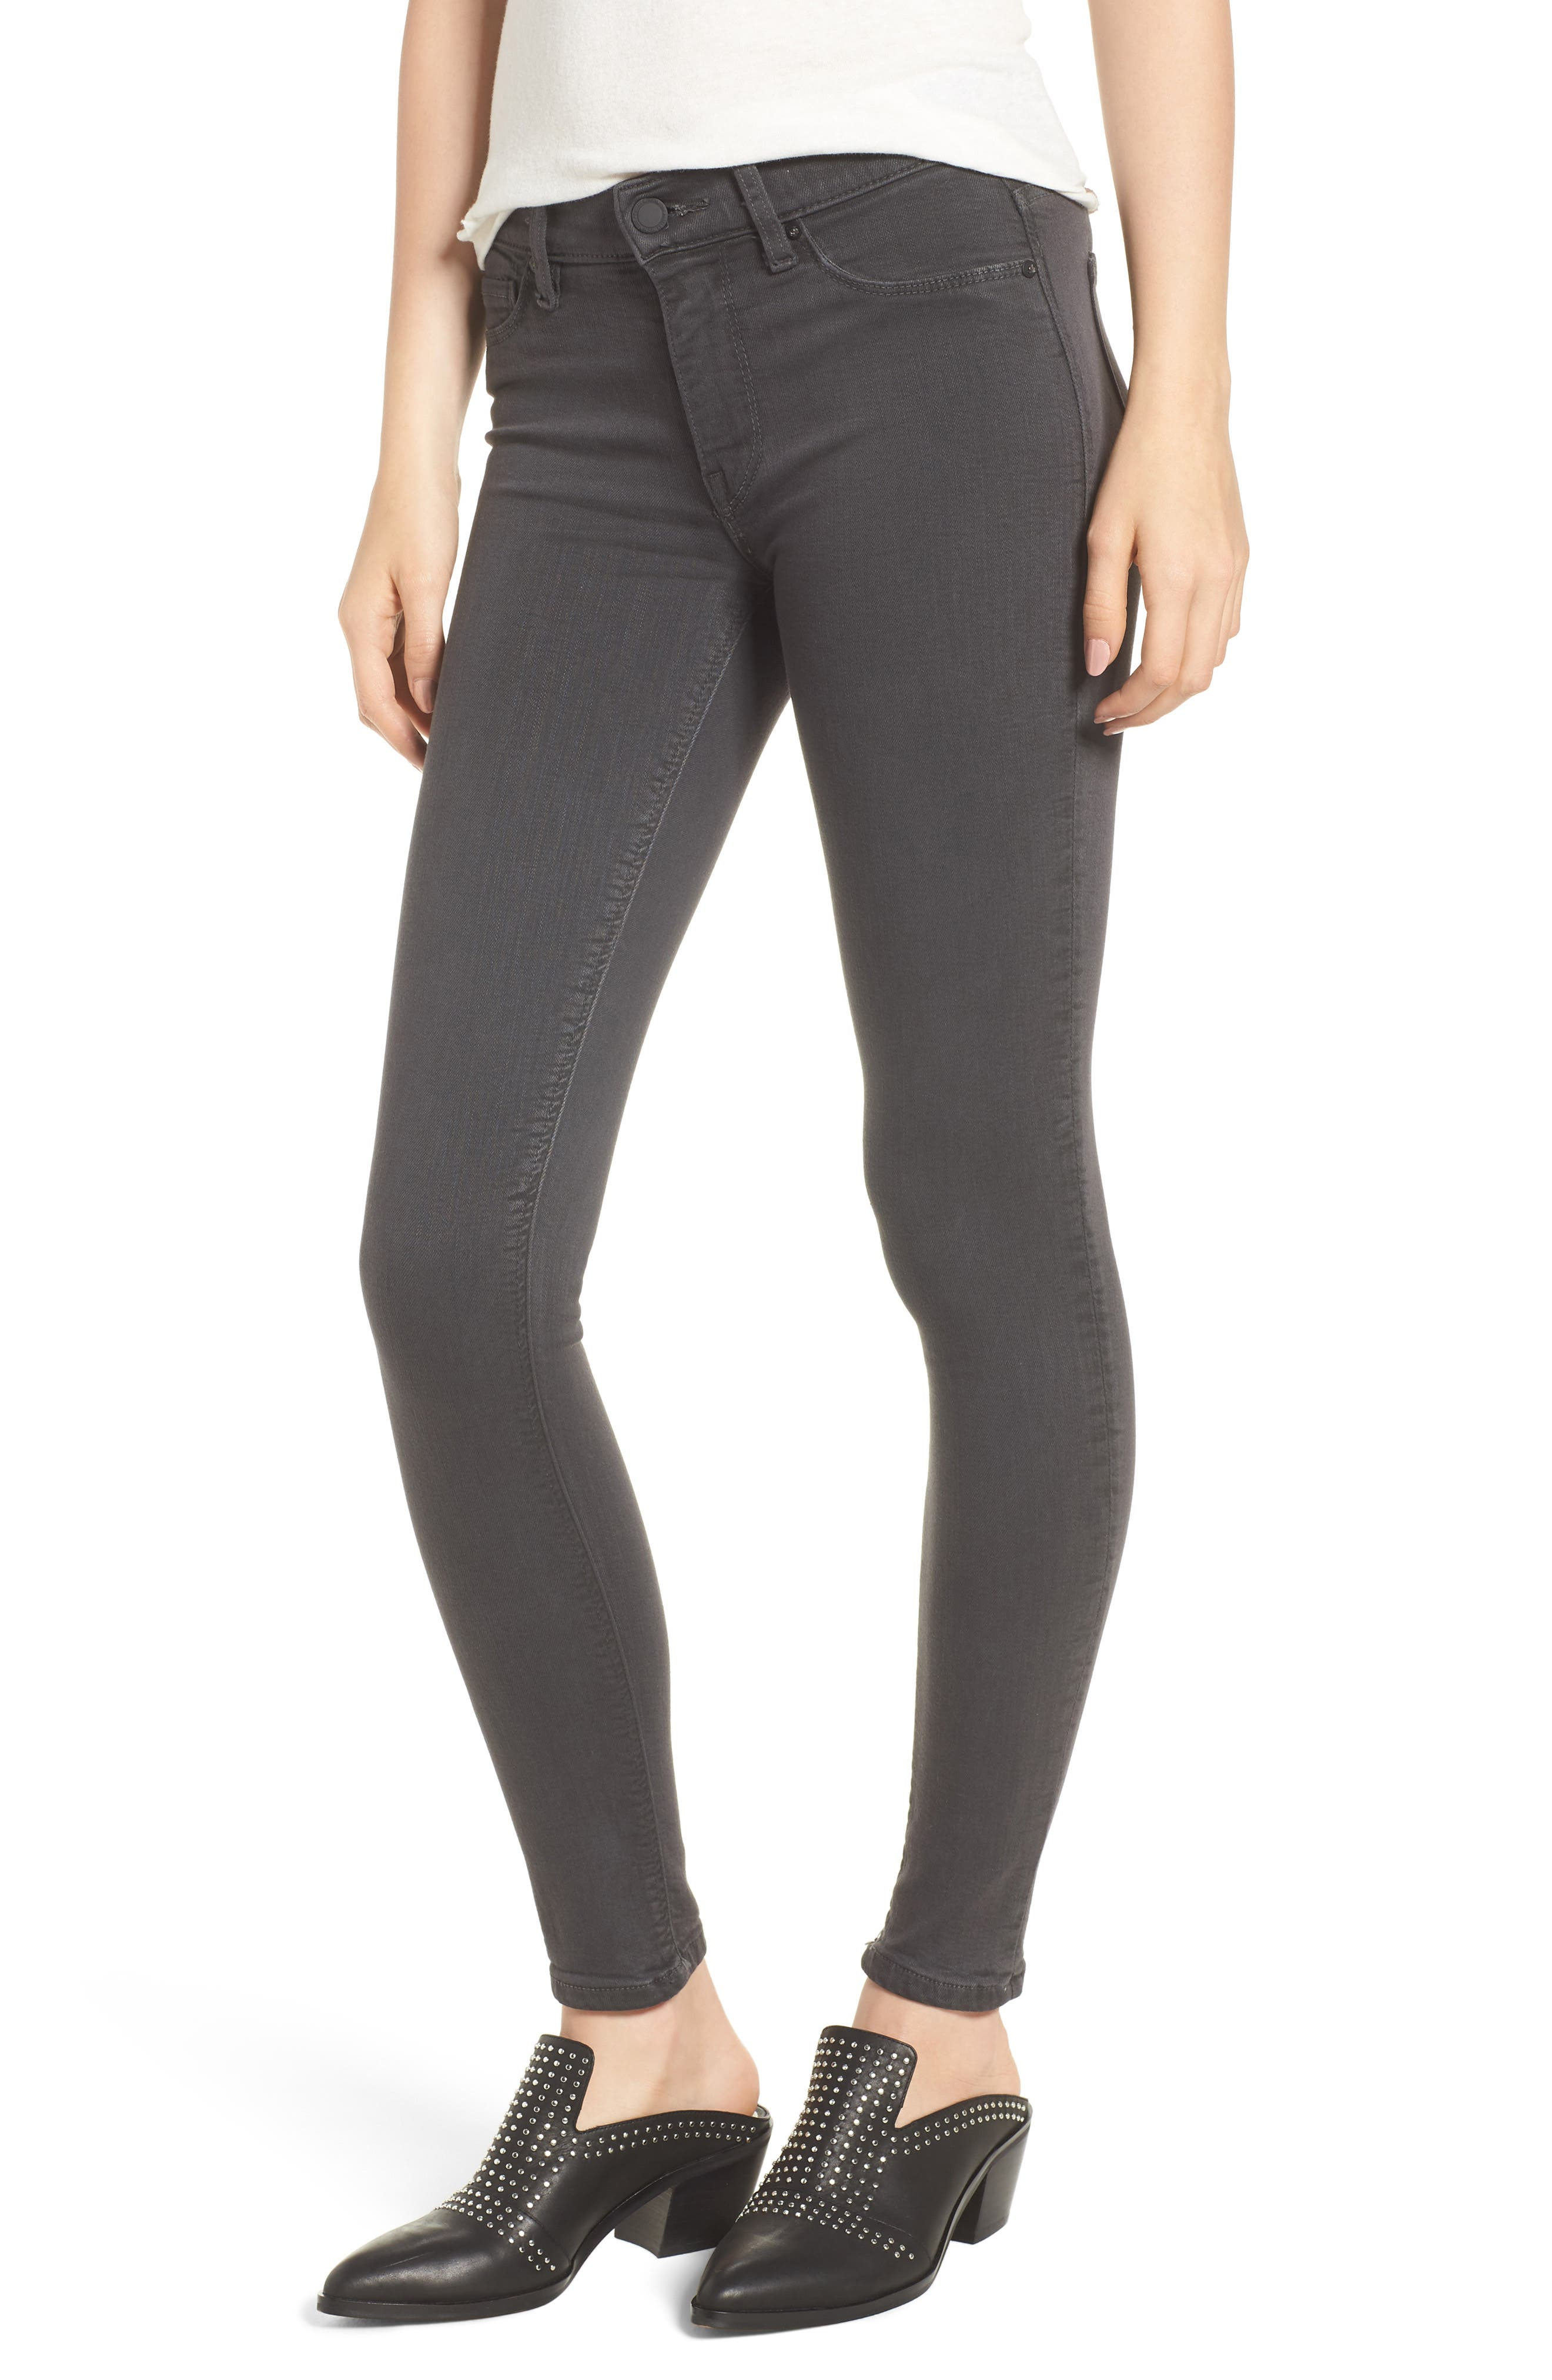 HudsonJeans Nico Coated Super Skinny Jeans,                             Main thumbnail 1, color,                             Distressed Graphite